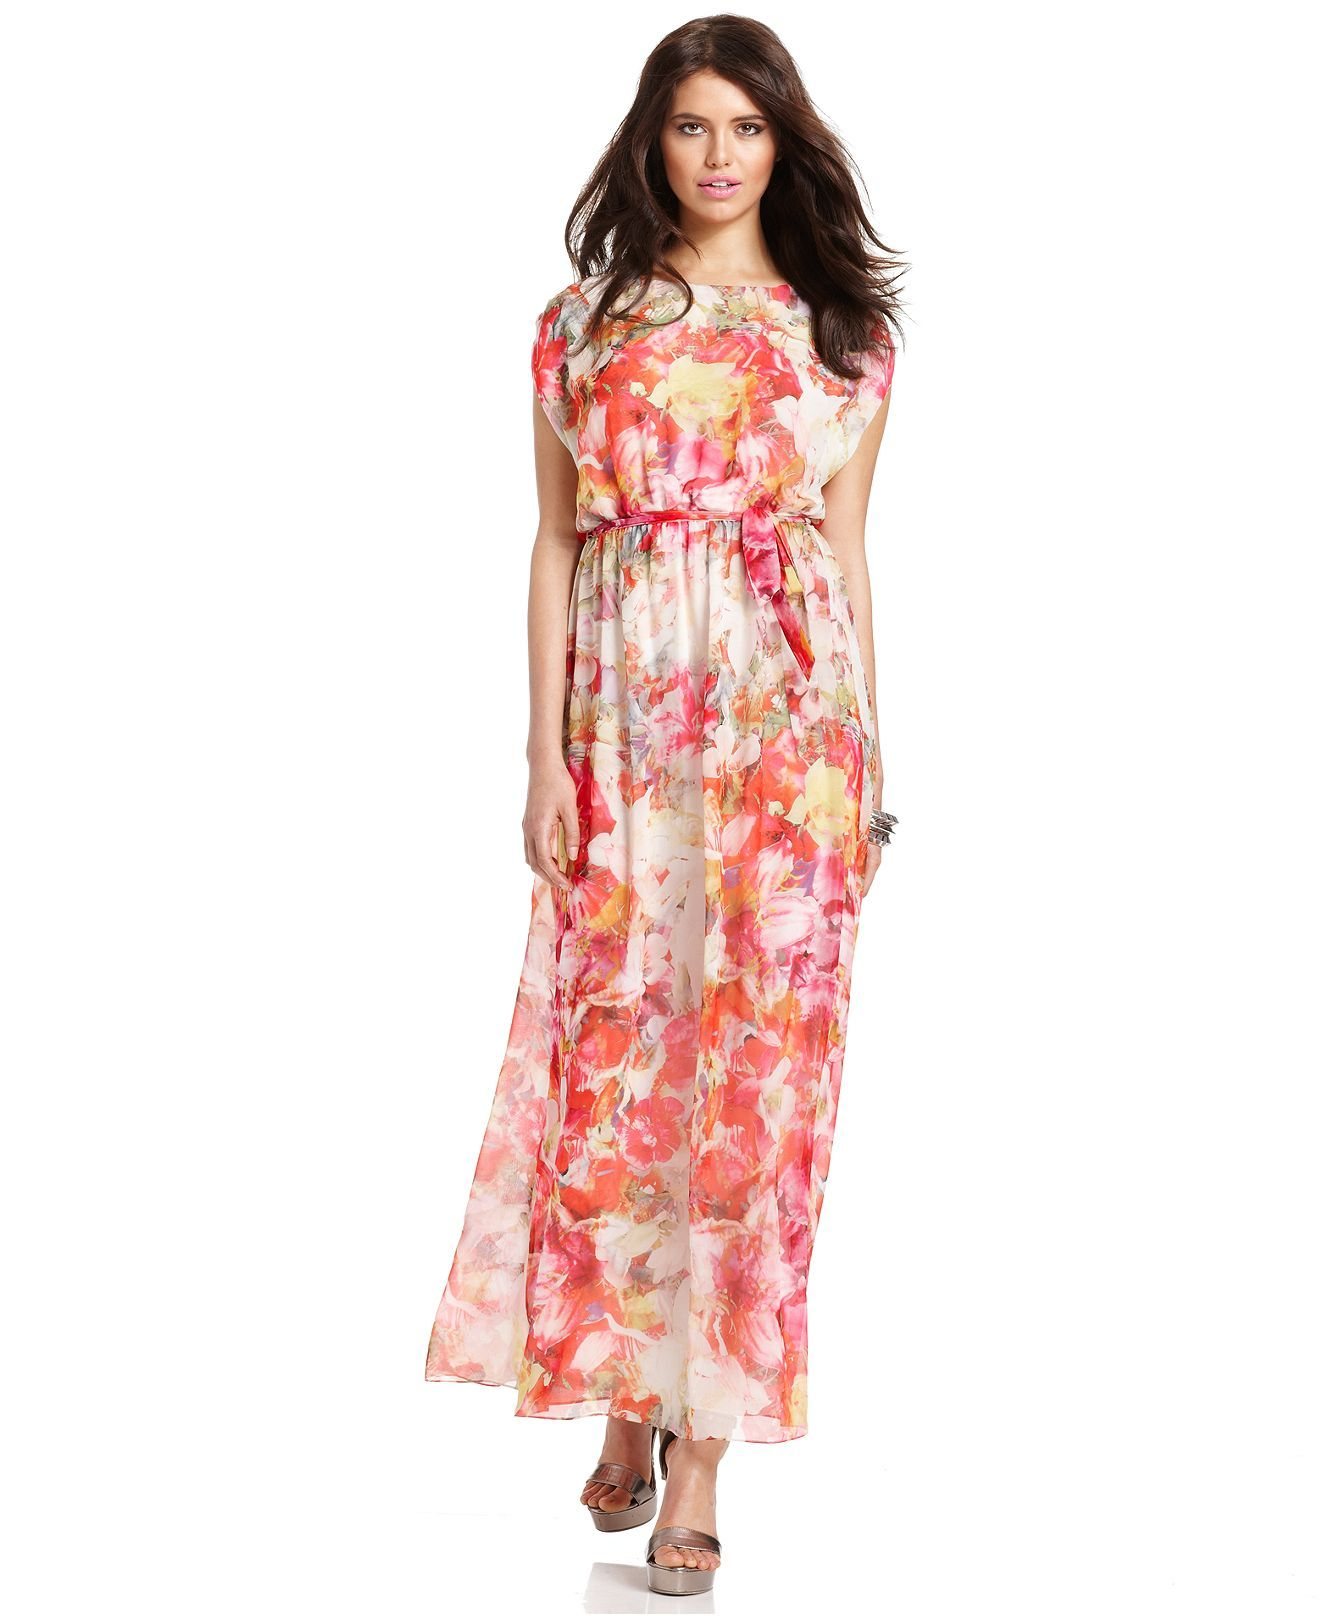 Vince Camuto Dress Cap Sleeve Floral Print Maxi Dresses Women